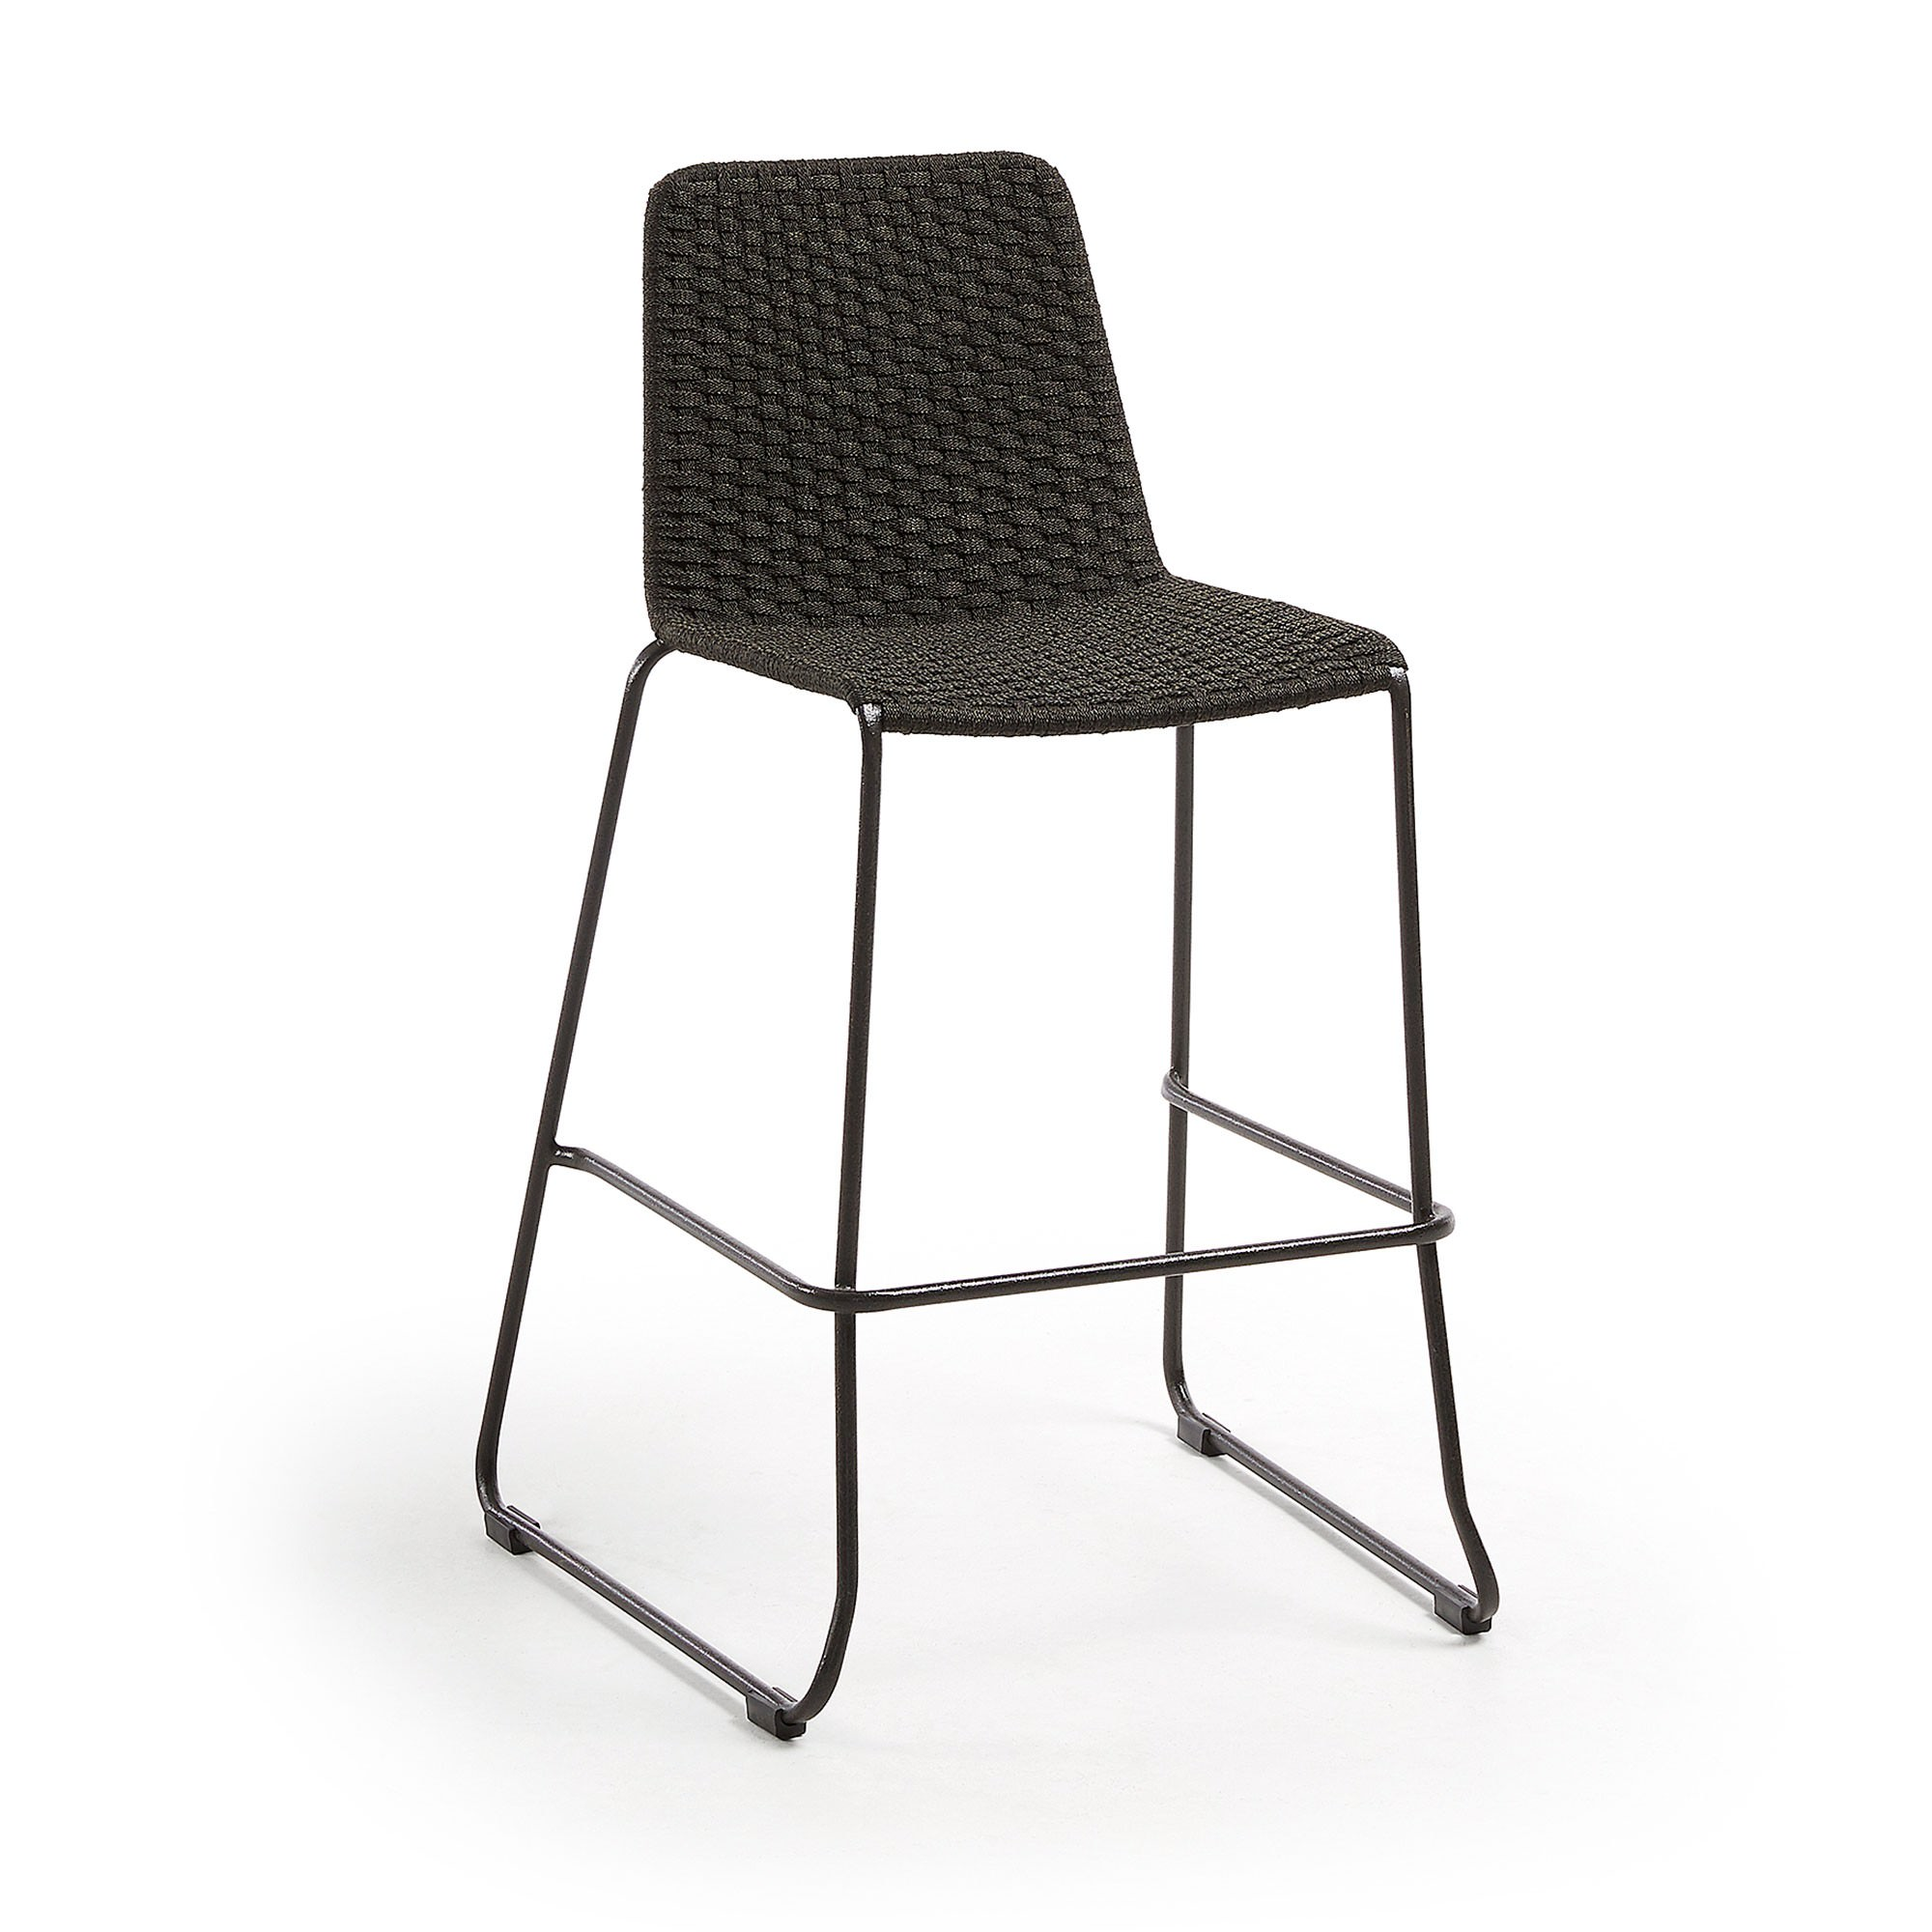 Merilyn Rope & Steel Indoor / Outdoor Bar Stool, Charcoal